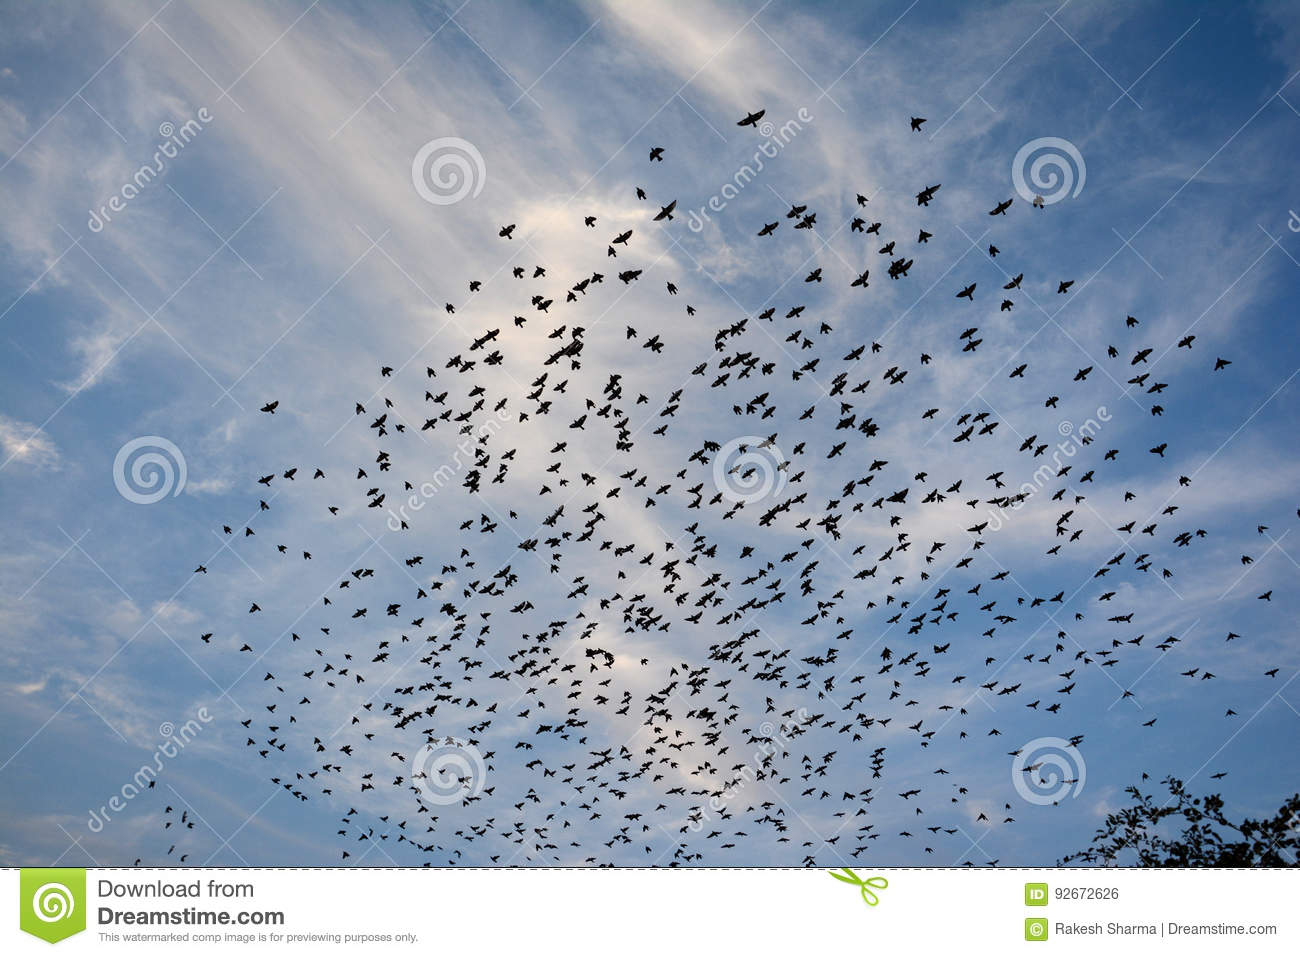 BEAUTY OF EVENING CLOUDS AND FLOCKING BIRDS